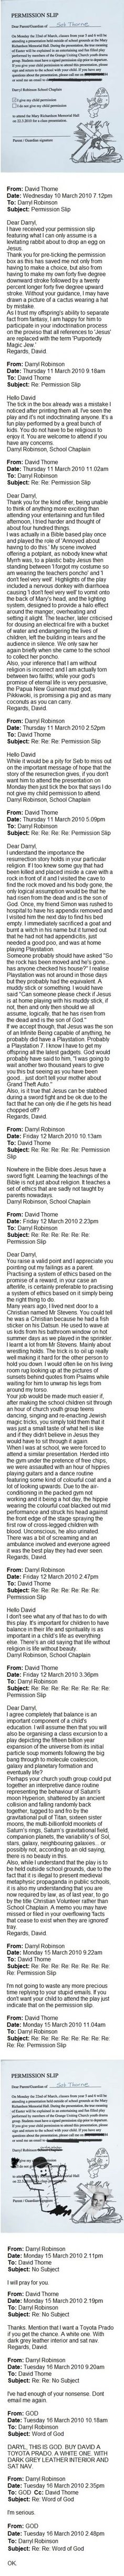 The Best Email Exchange Ever. This Man Is Hilarious. (Permission slip to attend religious play)